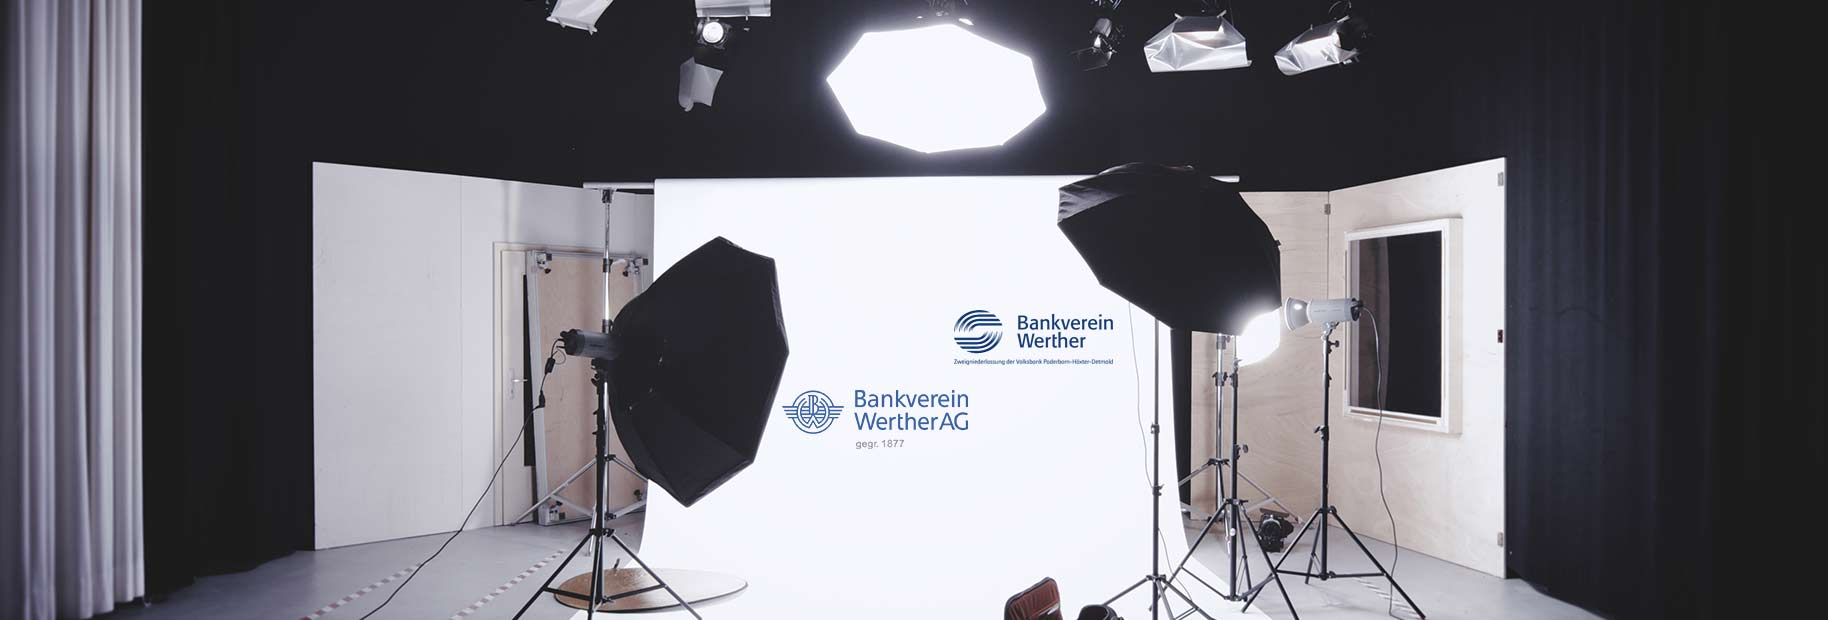 Marken-Integration Bankverein Werther